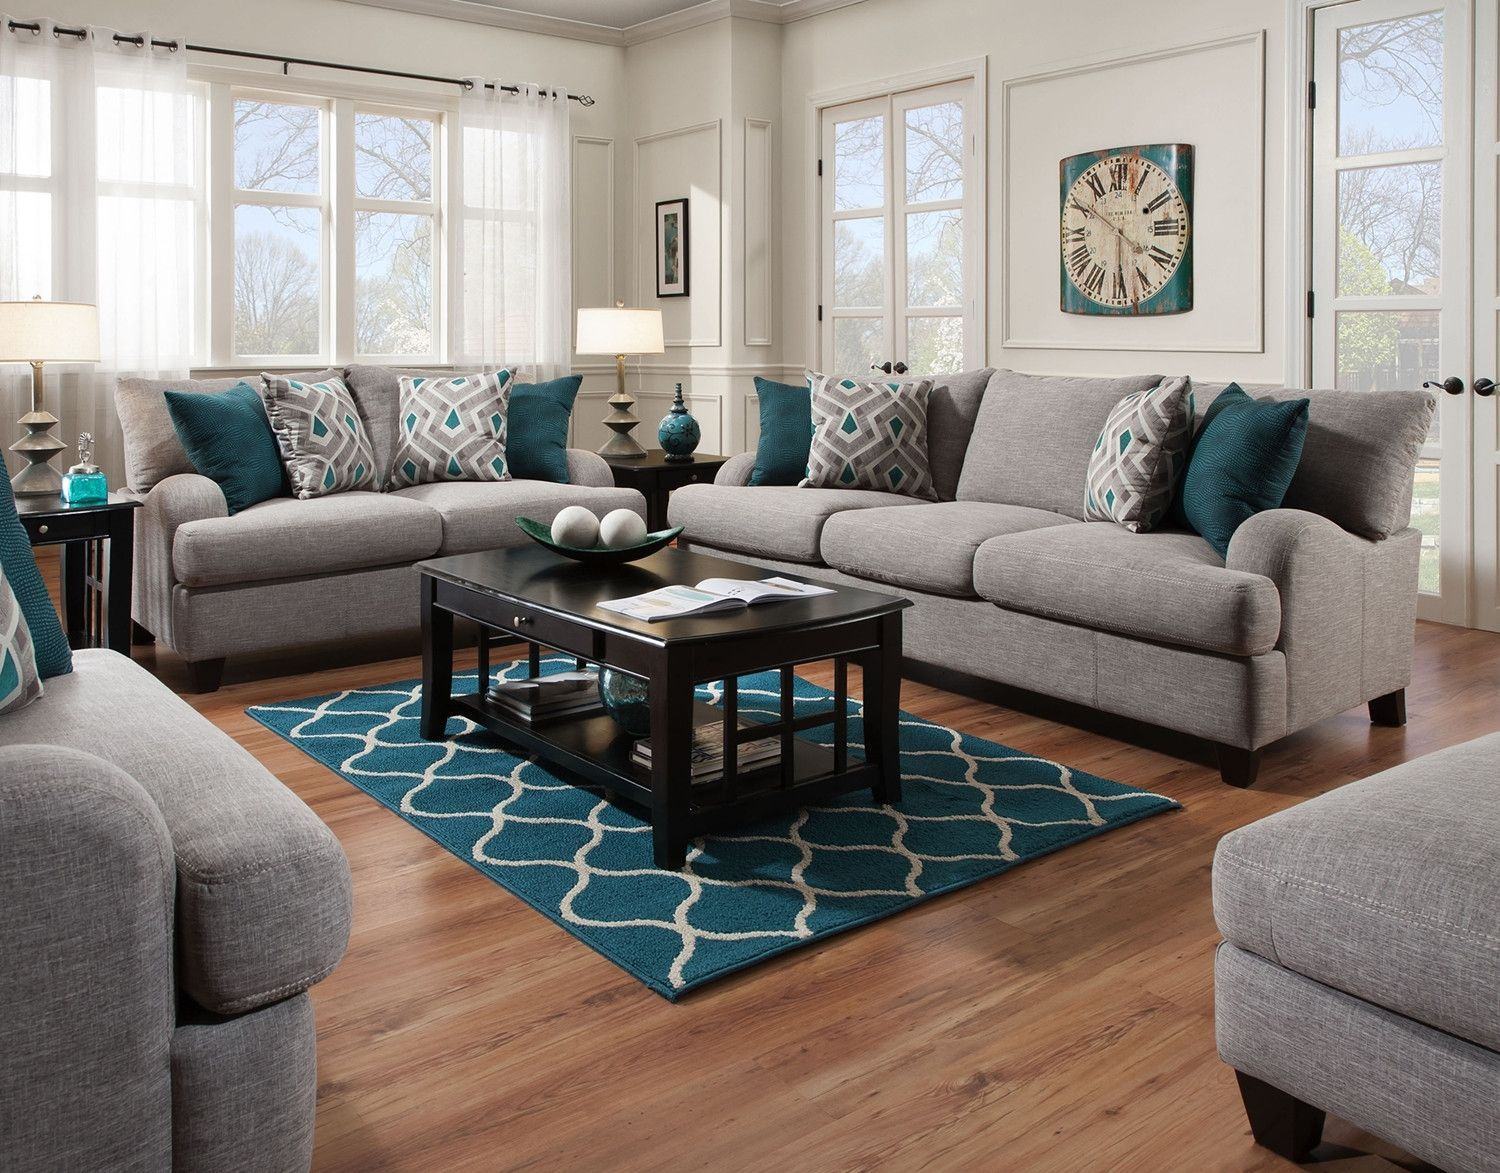 The Paradigm Living Room Set